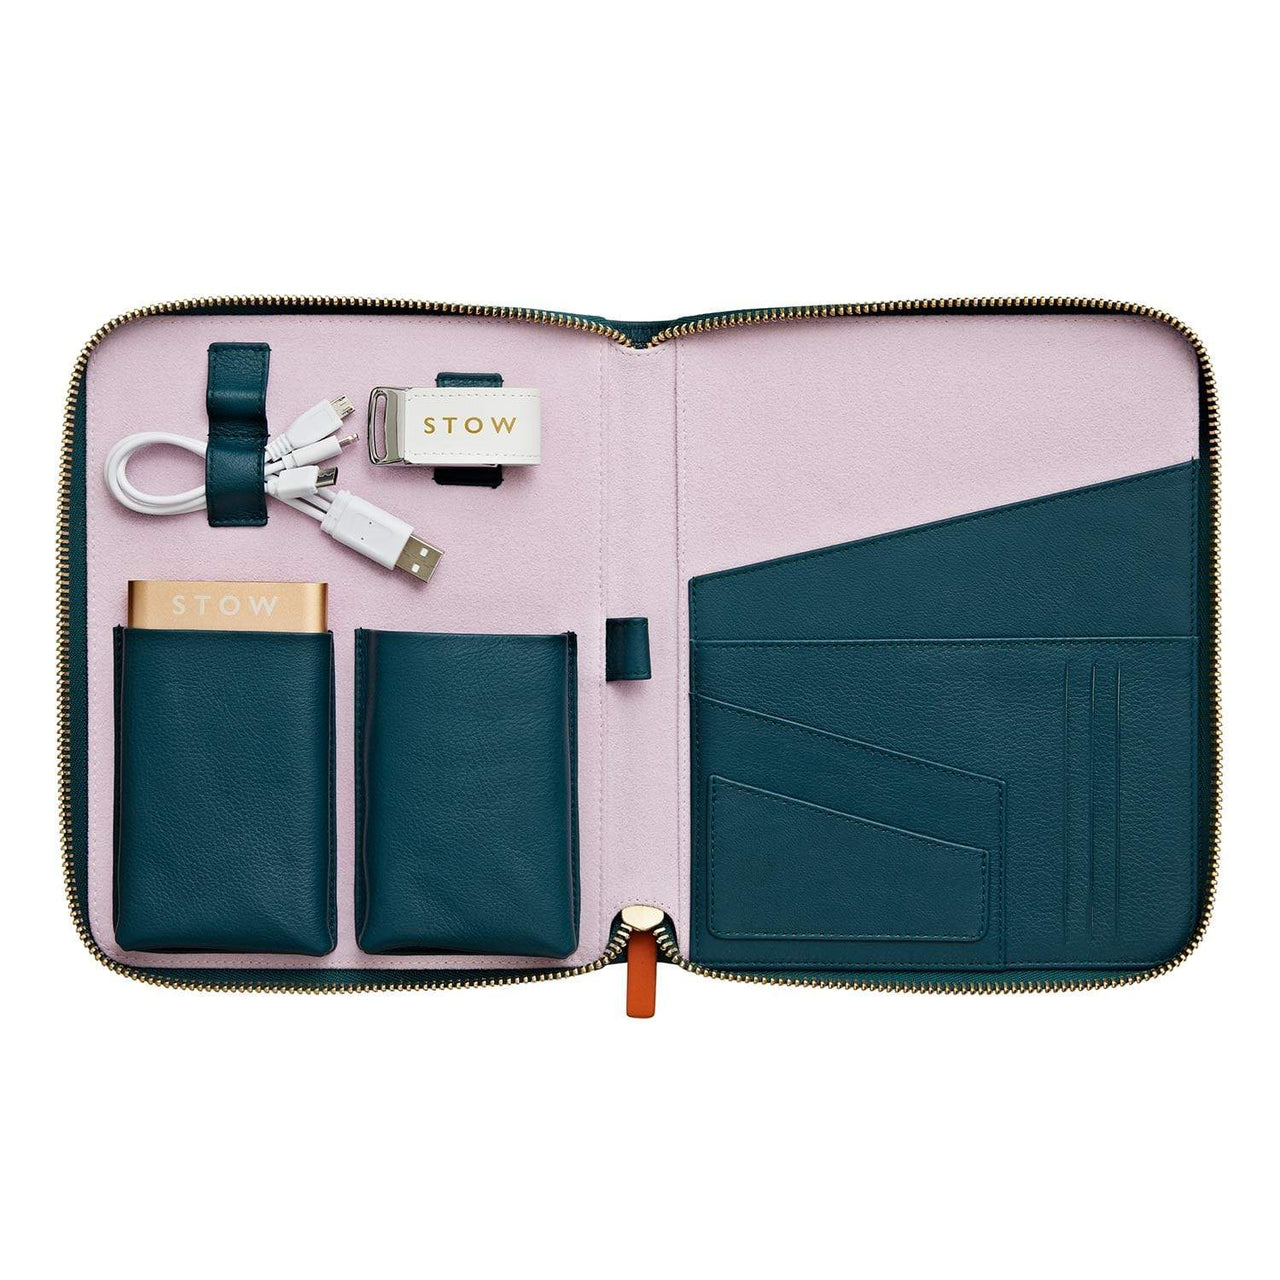 STOW Tablet Cases Emerald Green & Powder Pink / Gold Powerbank & White USB First Class Leather Tech Case